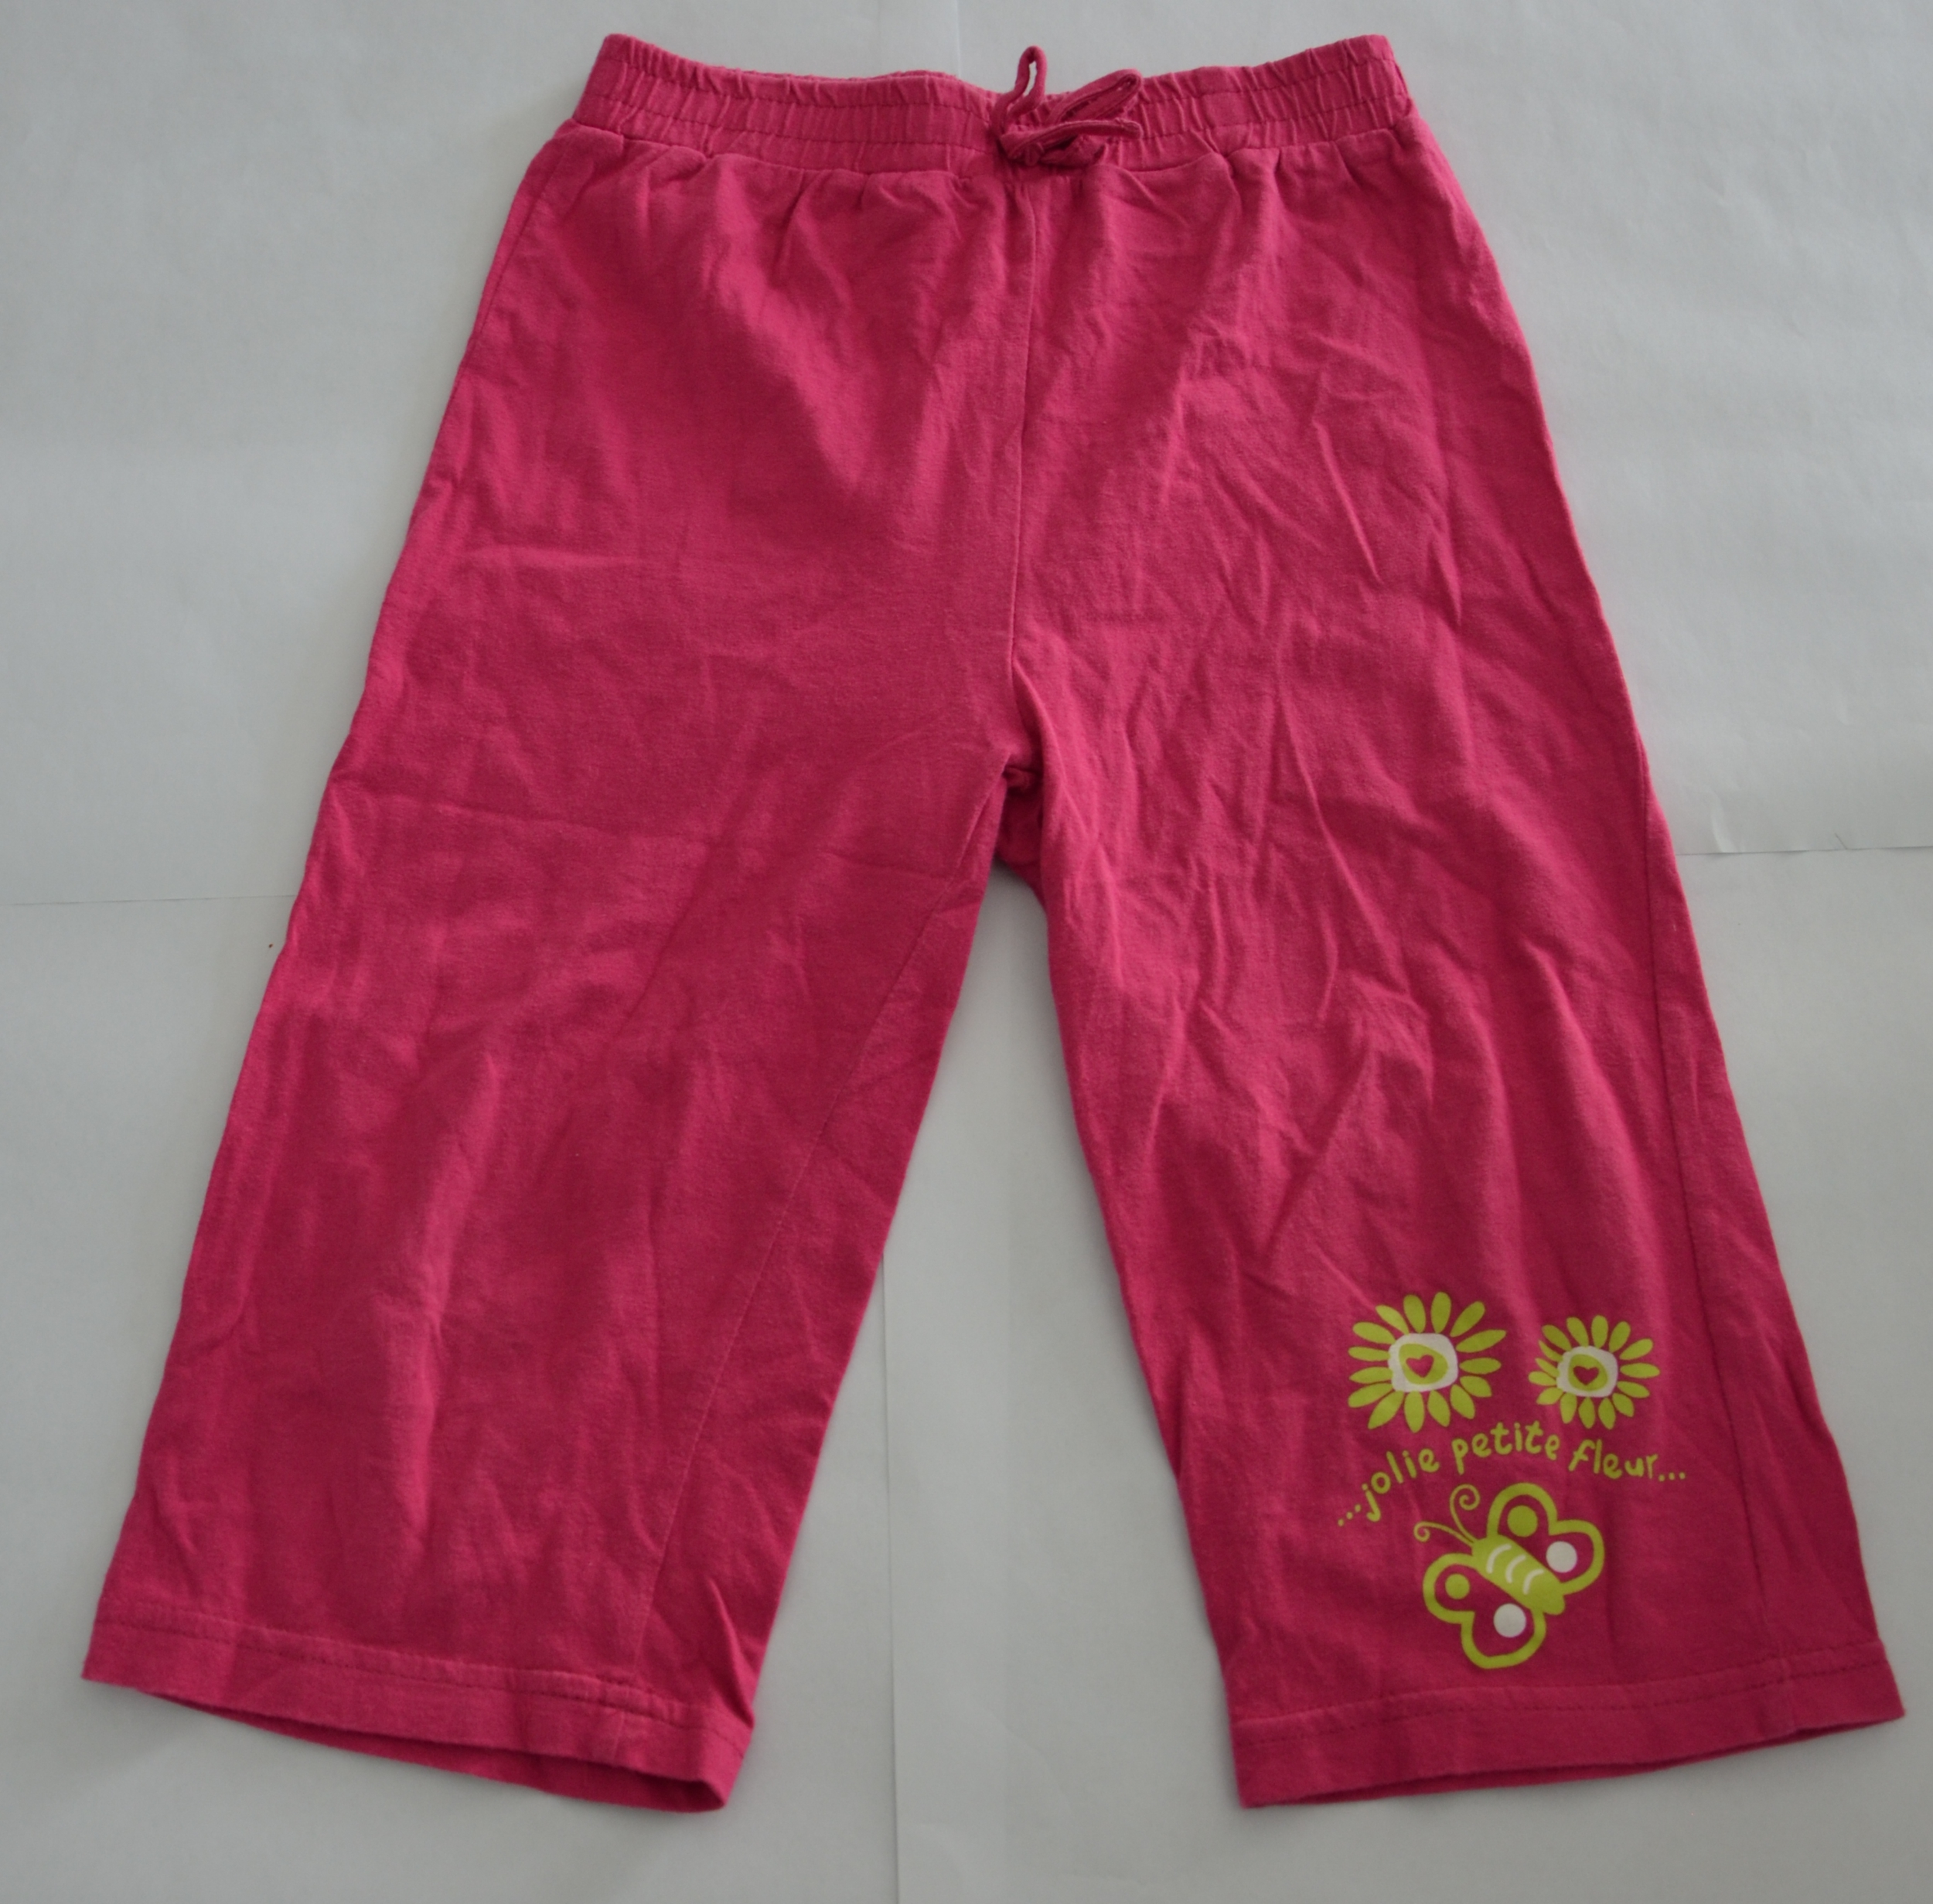 pantalon fille 5 ans 3 suisses rose occasion